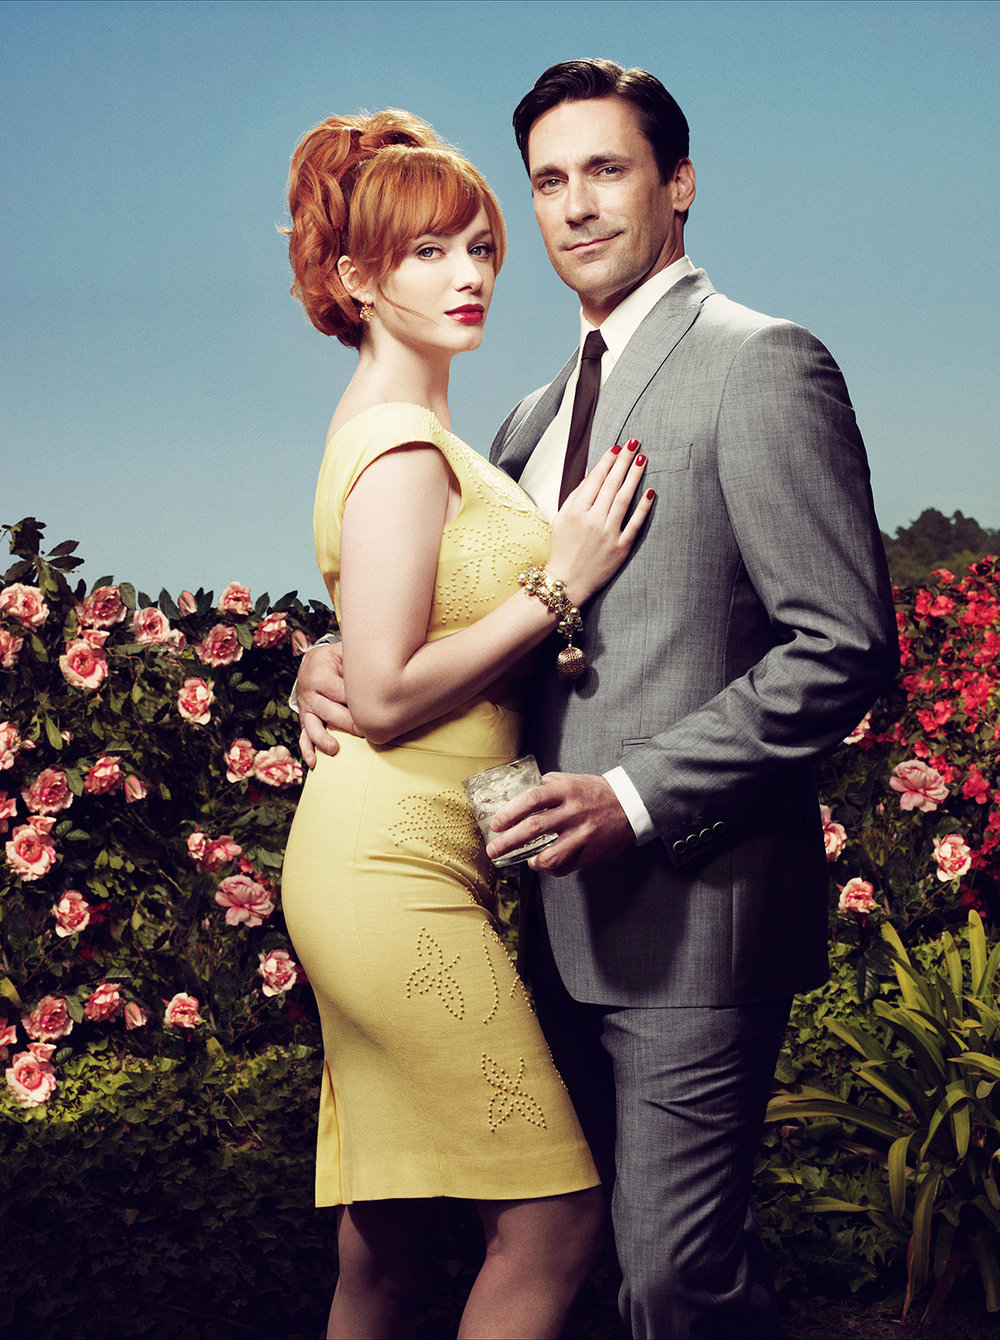 Christina Hendricks and Jon Hamm - Los Angeles, CA